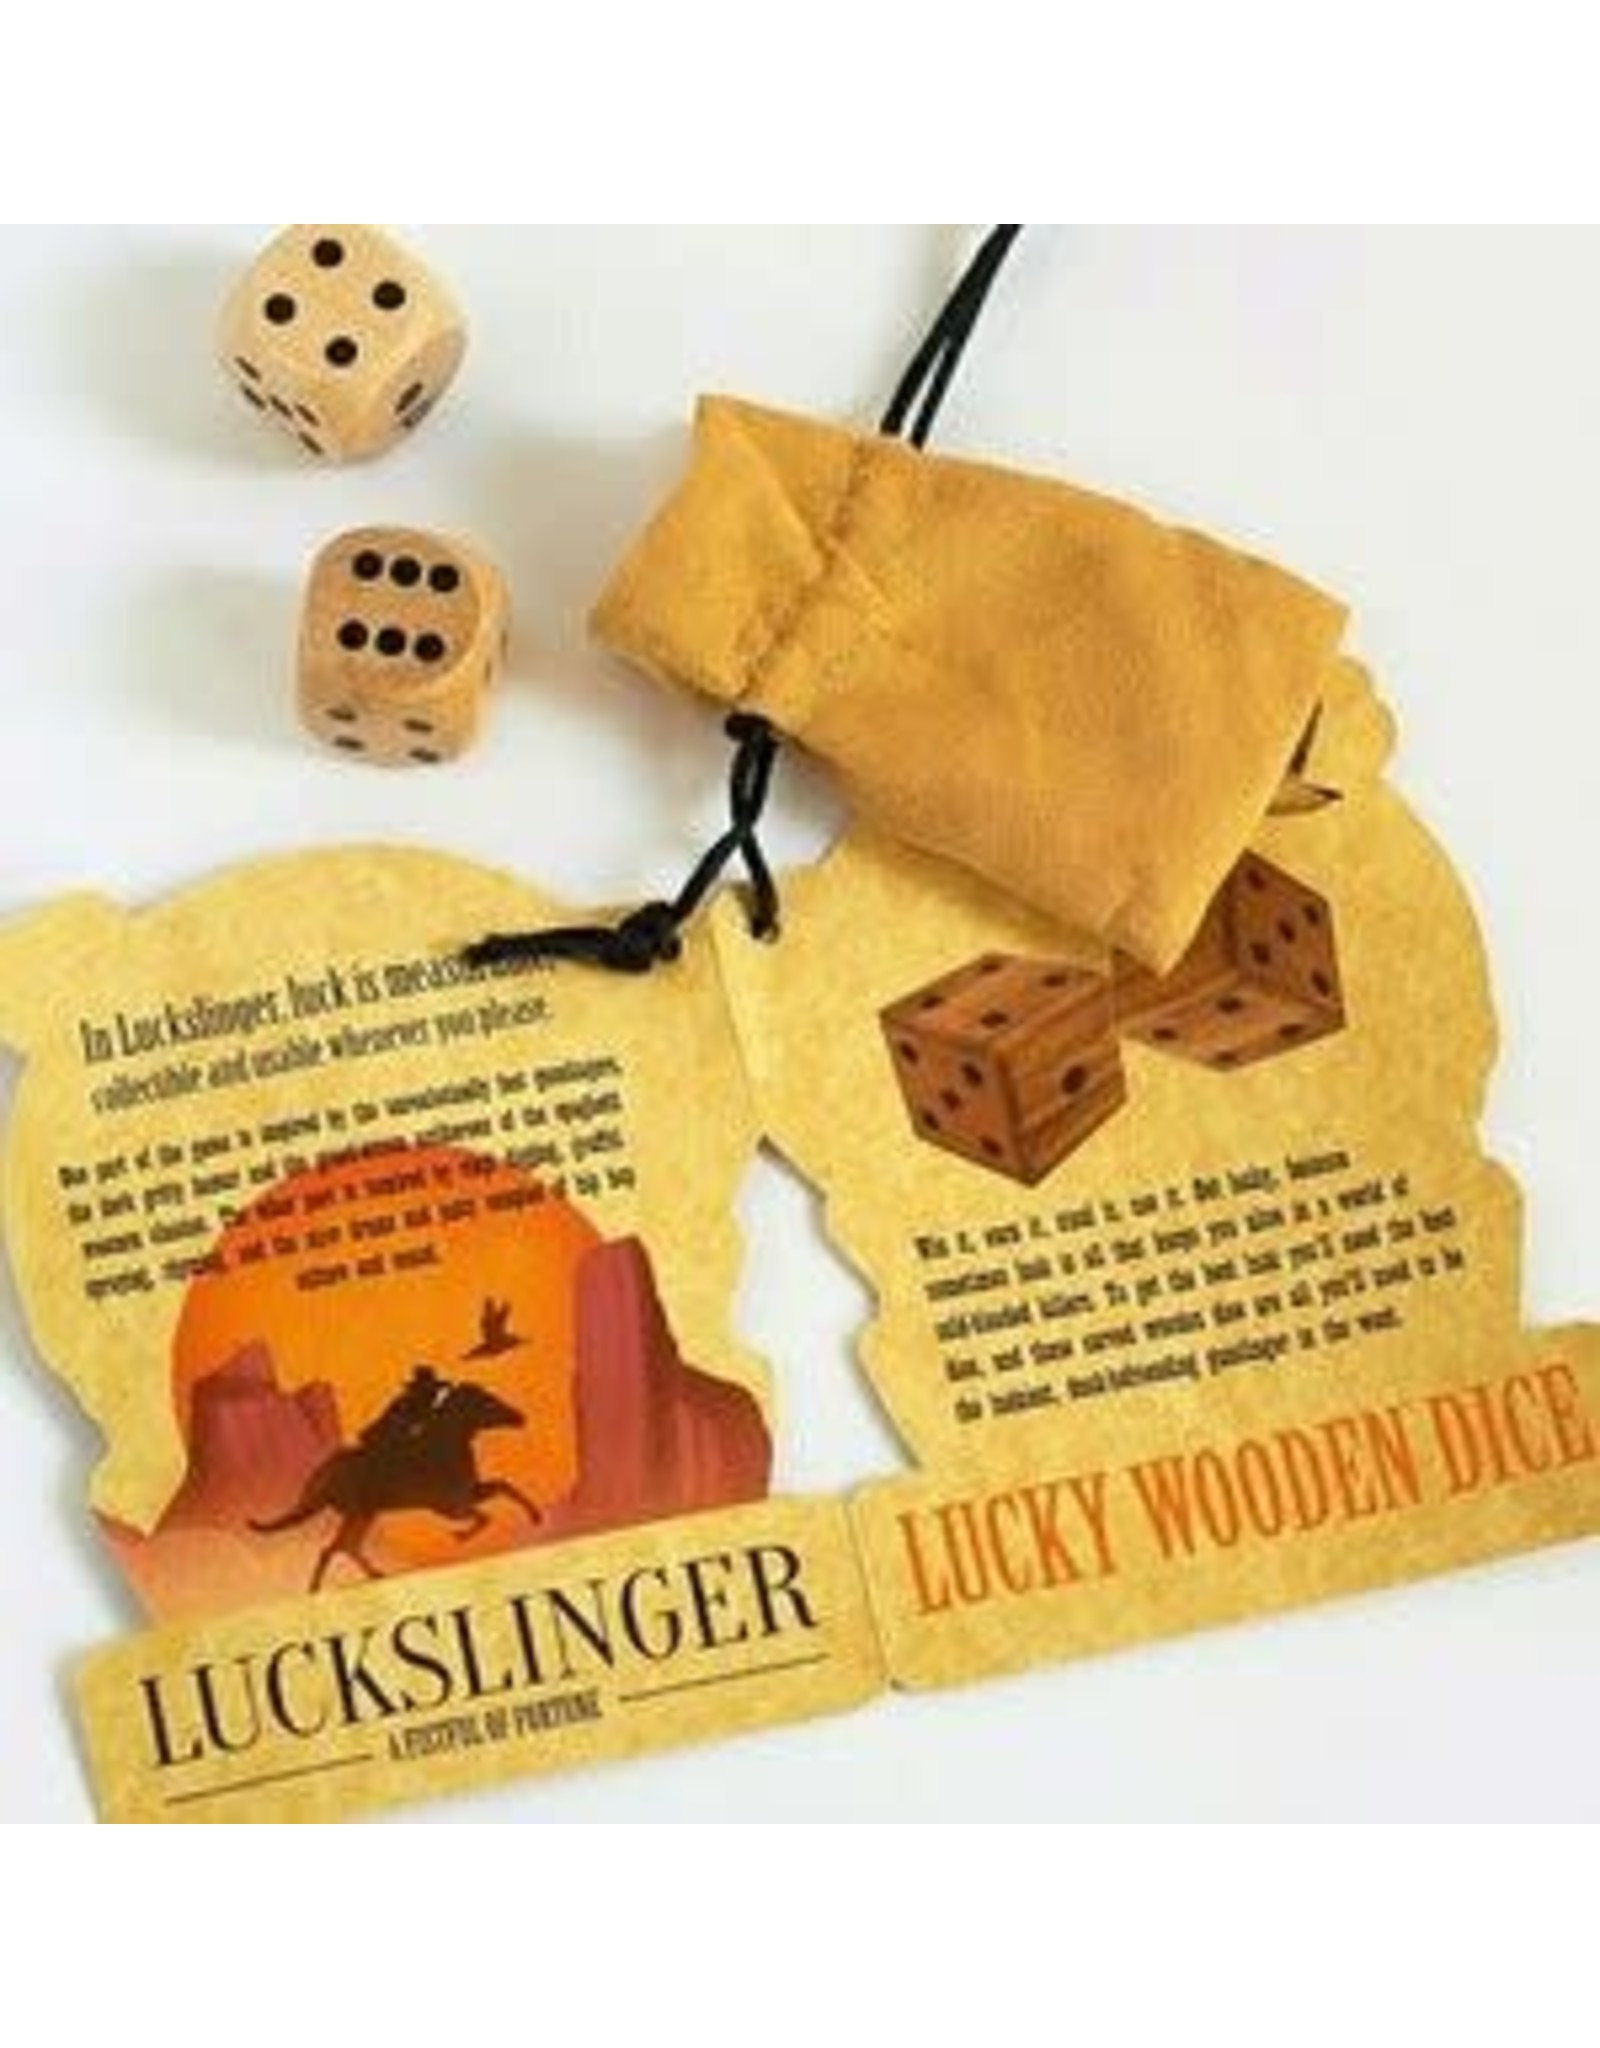 LuckSlinger Dice & Game